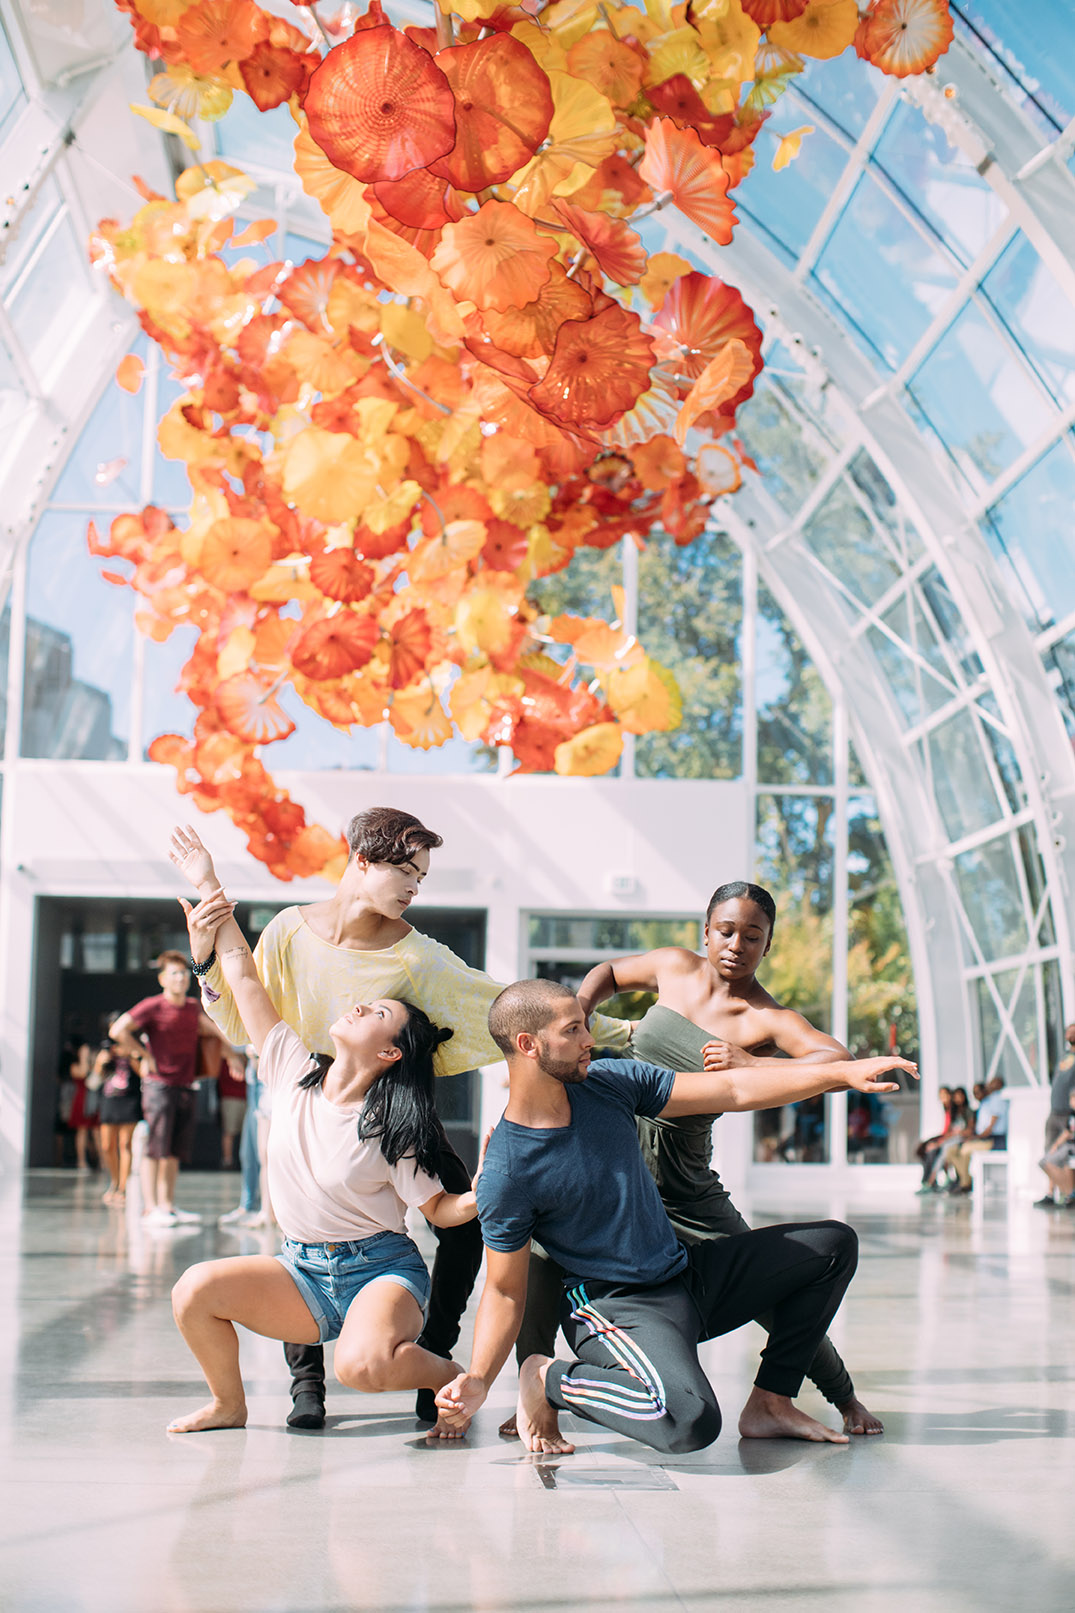 Chihuly Museum of Glass dancers